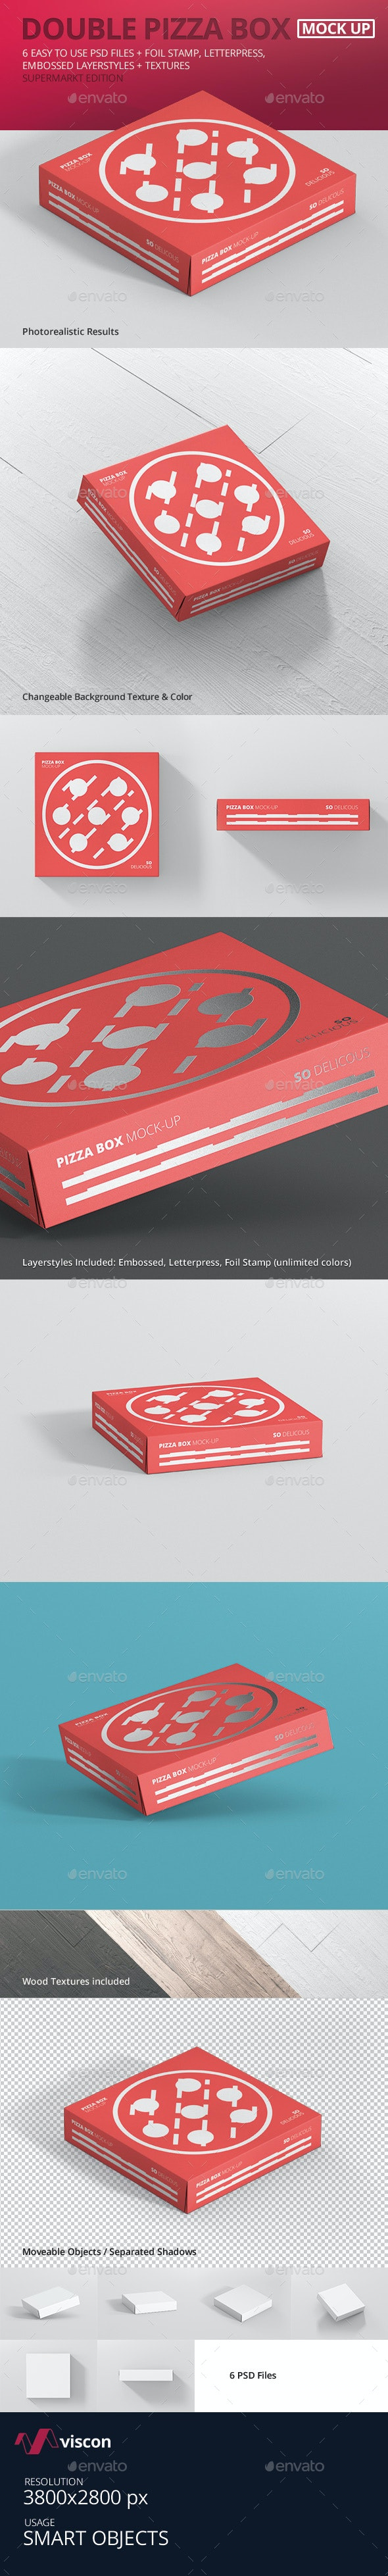 Pizza Box Mockup - Double Pack Supermarket Edition - Food and Drink Packaging